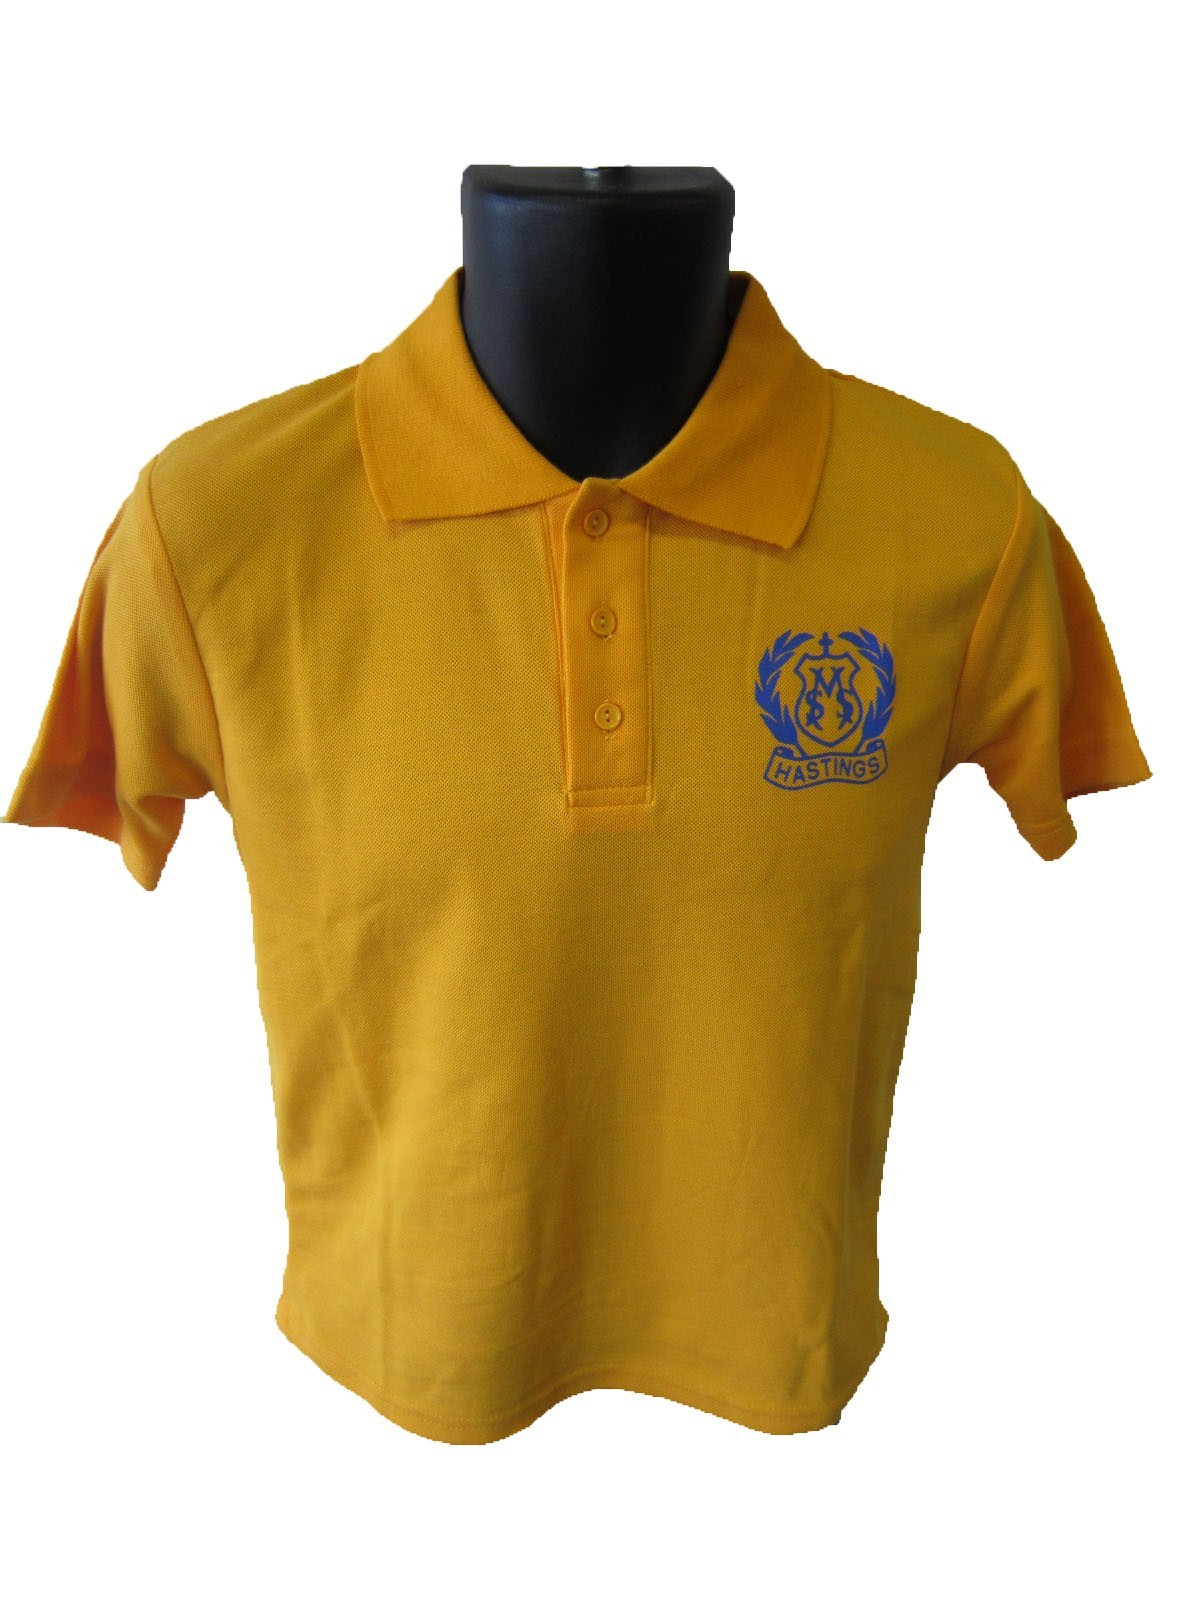 b52d2194 More info. SHORT SLEEVE SPORTS POLO SHIRT- [WITH PRINTED ...